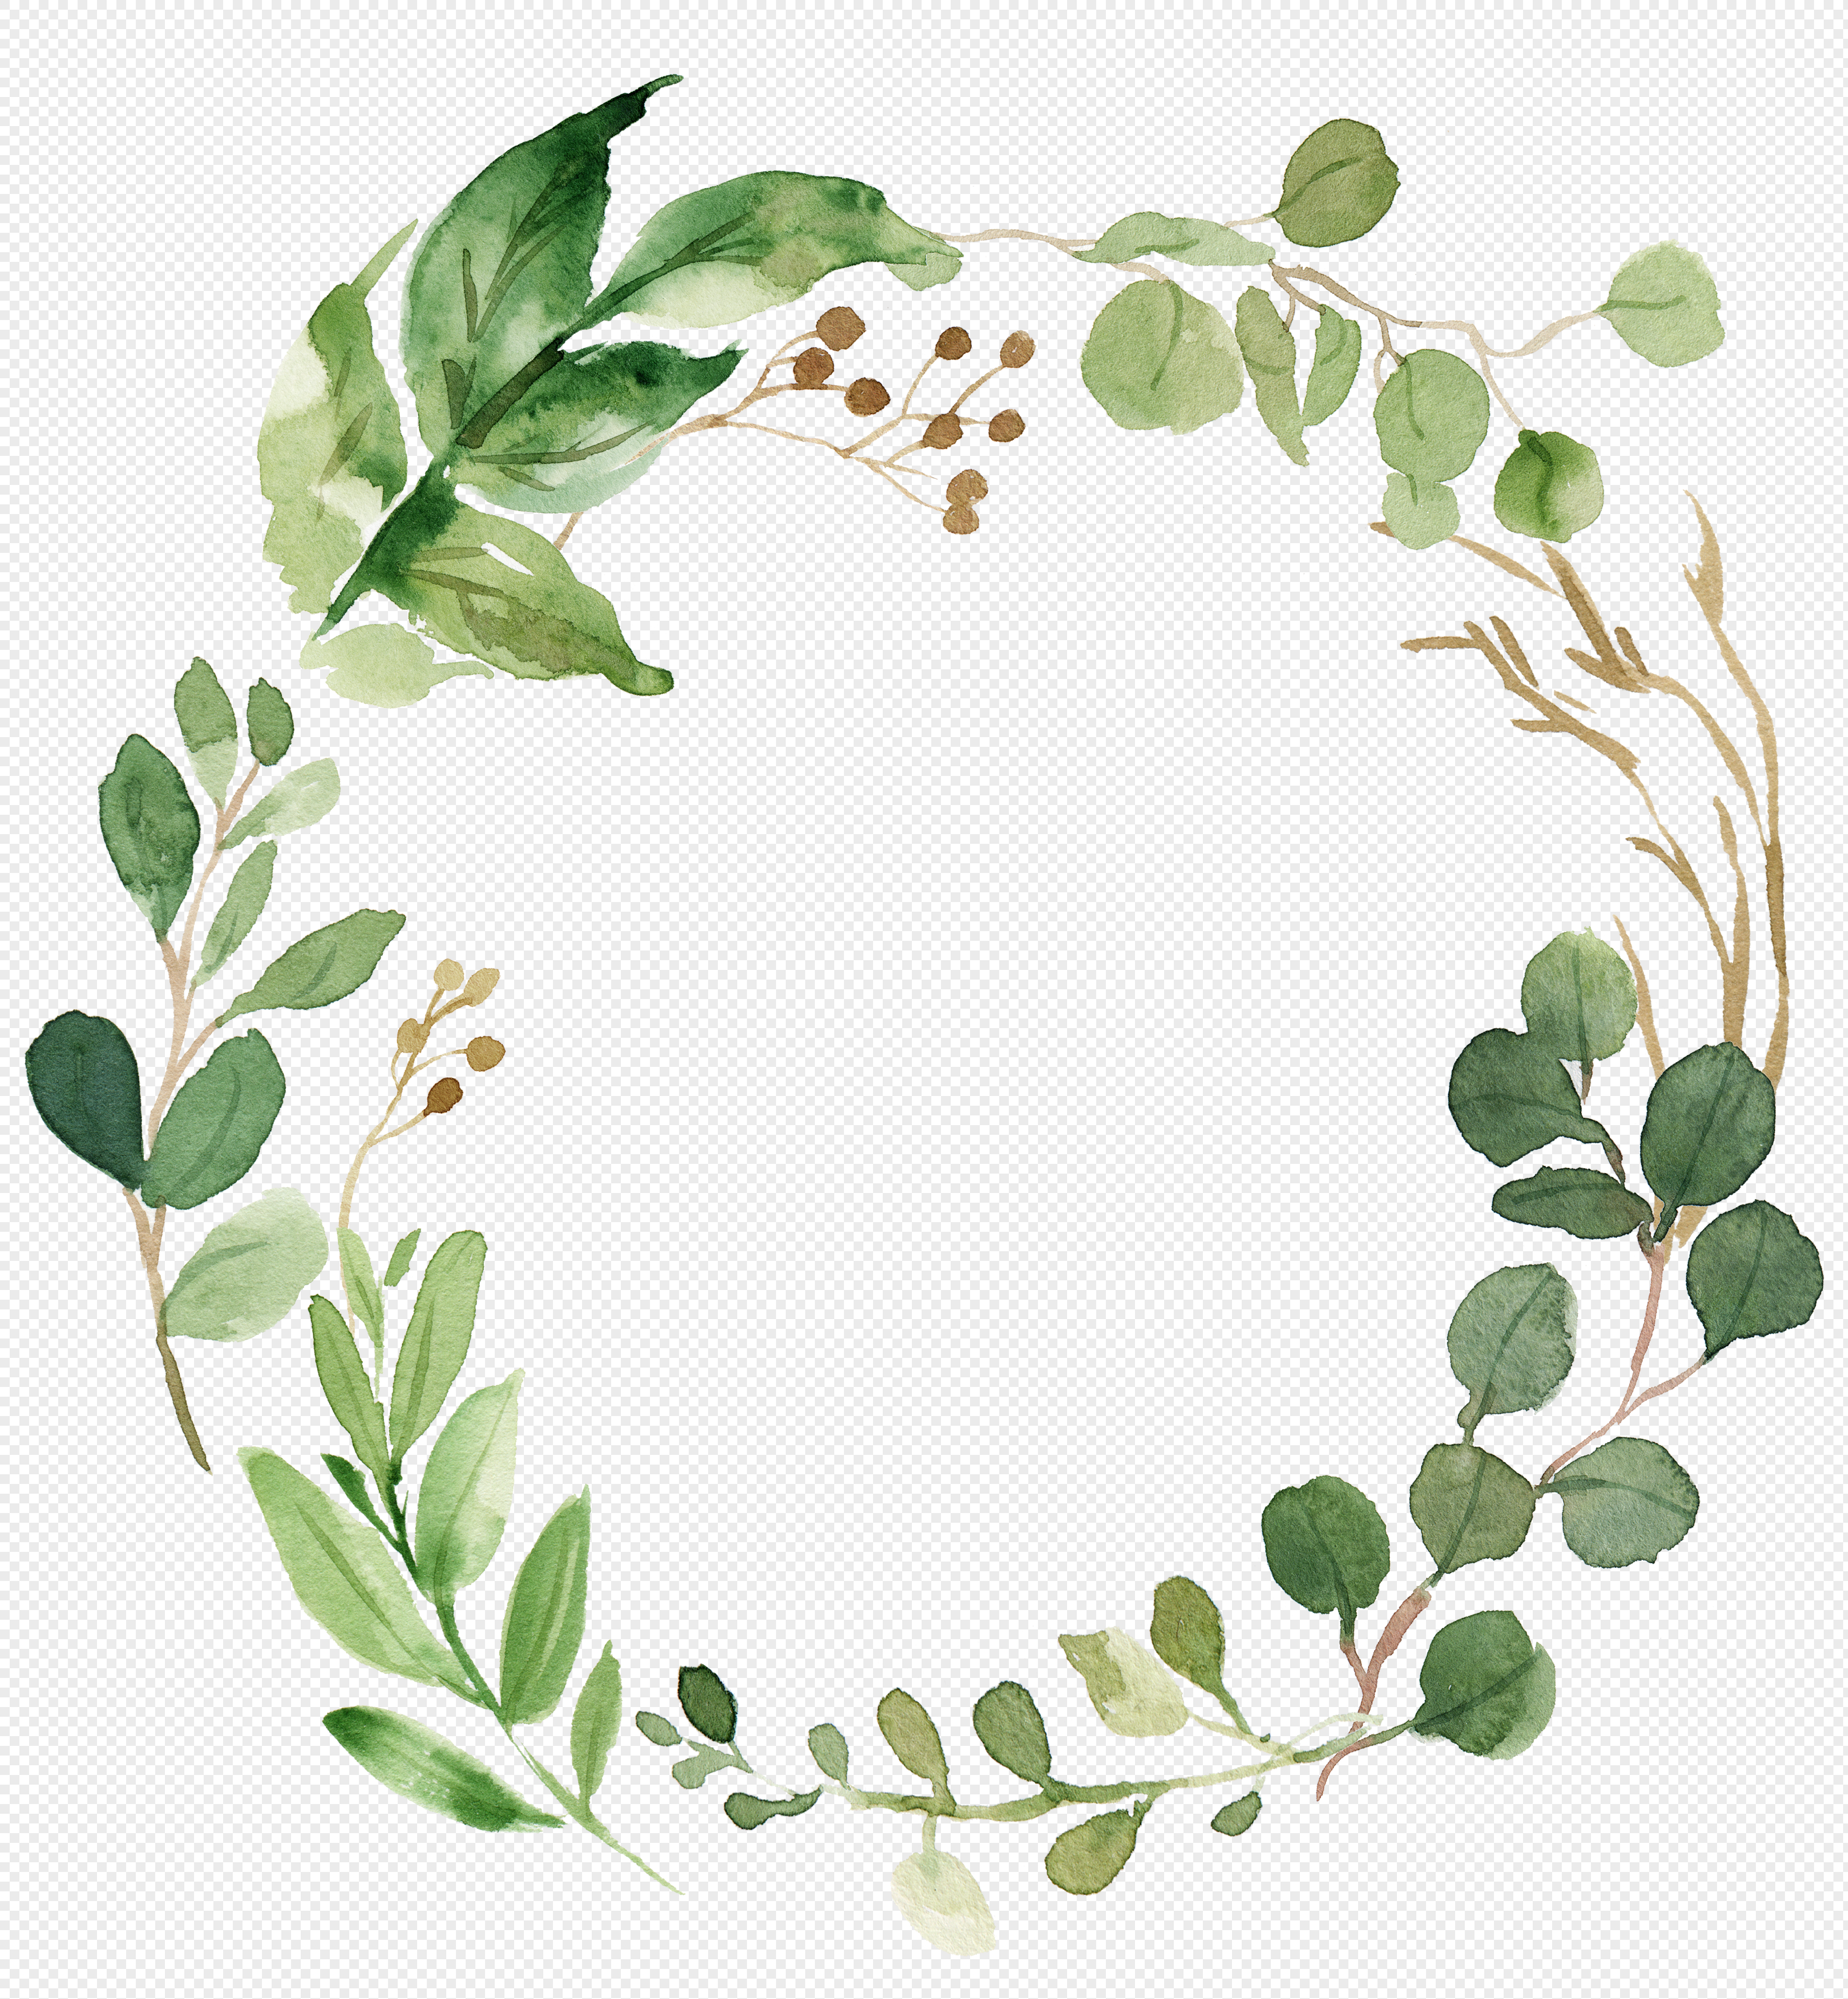 watercolor wreath png image picture free download